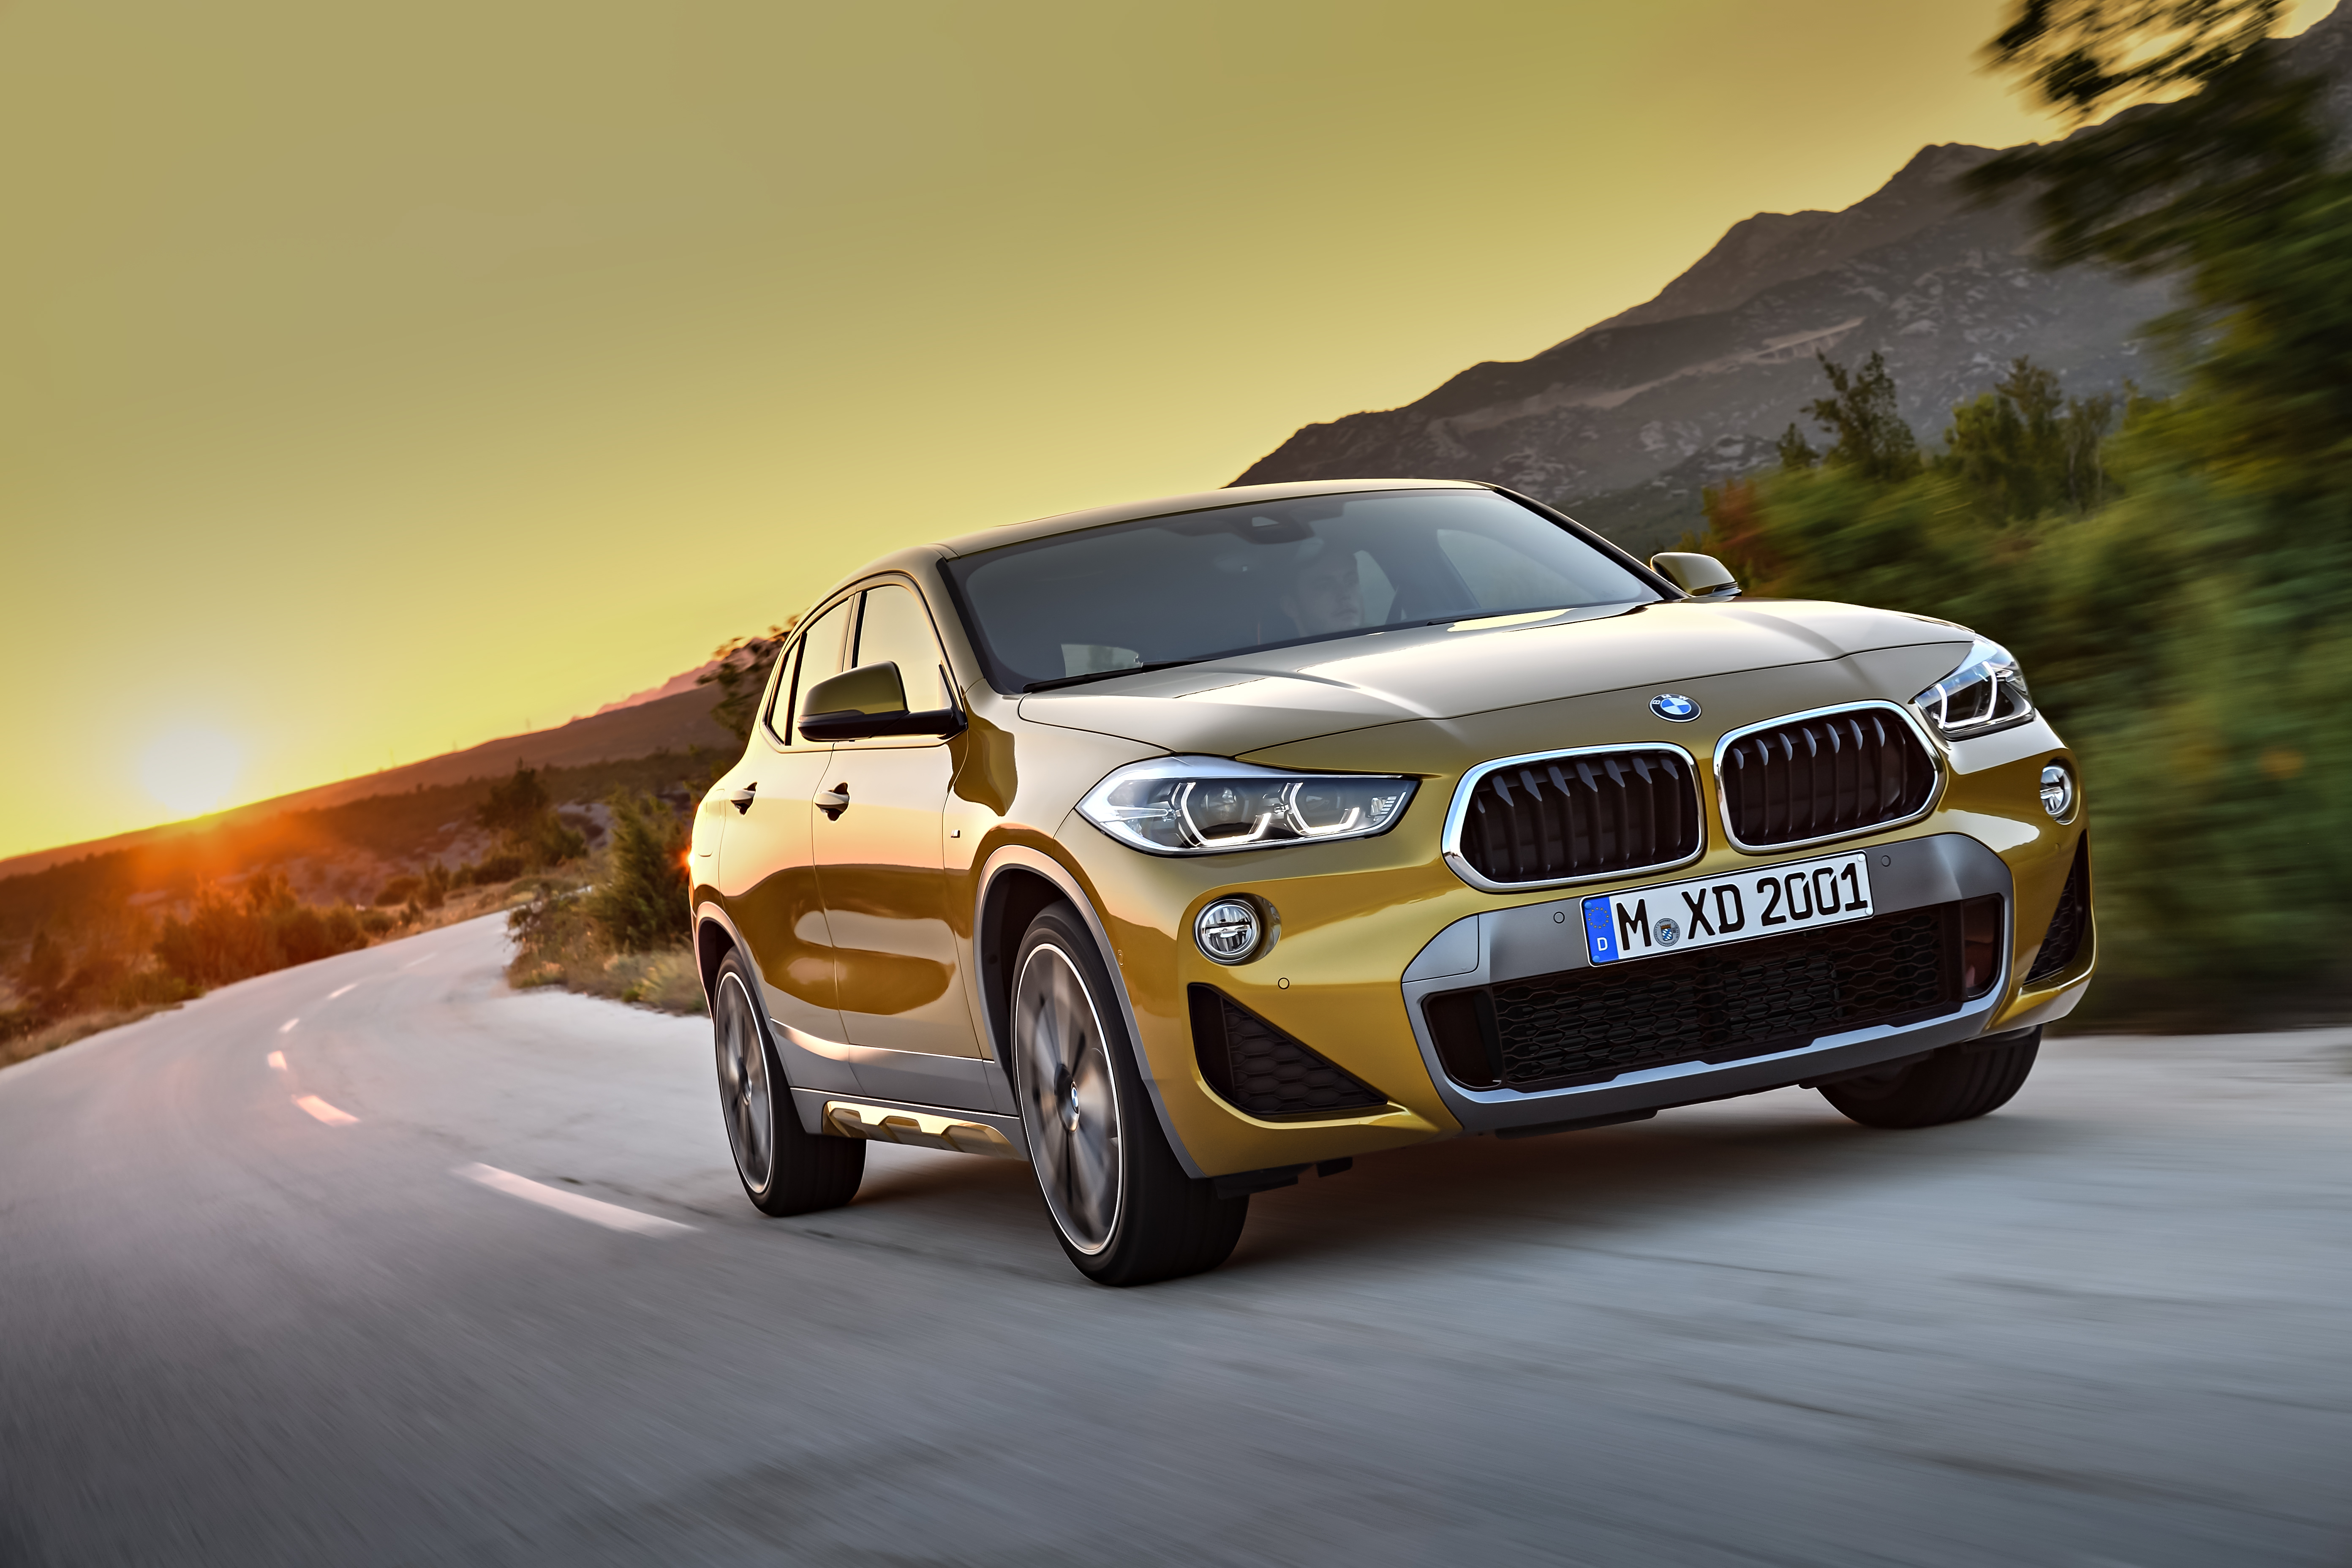 f39 bmw x2 unveiled with new m sport x package paul tan image 728980. Black Bedroom Furniture Sets. Home Design Ideas